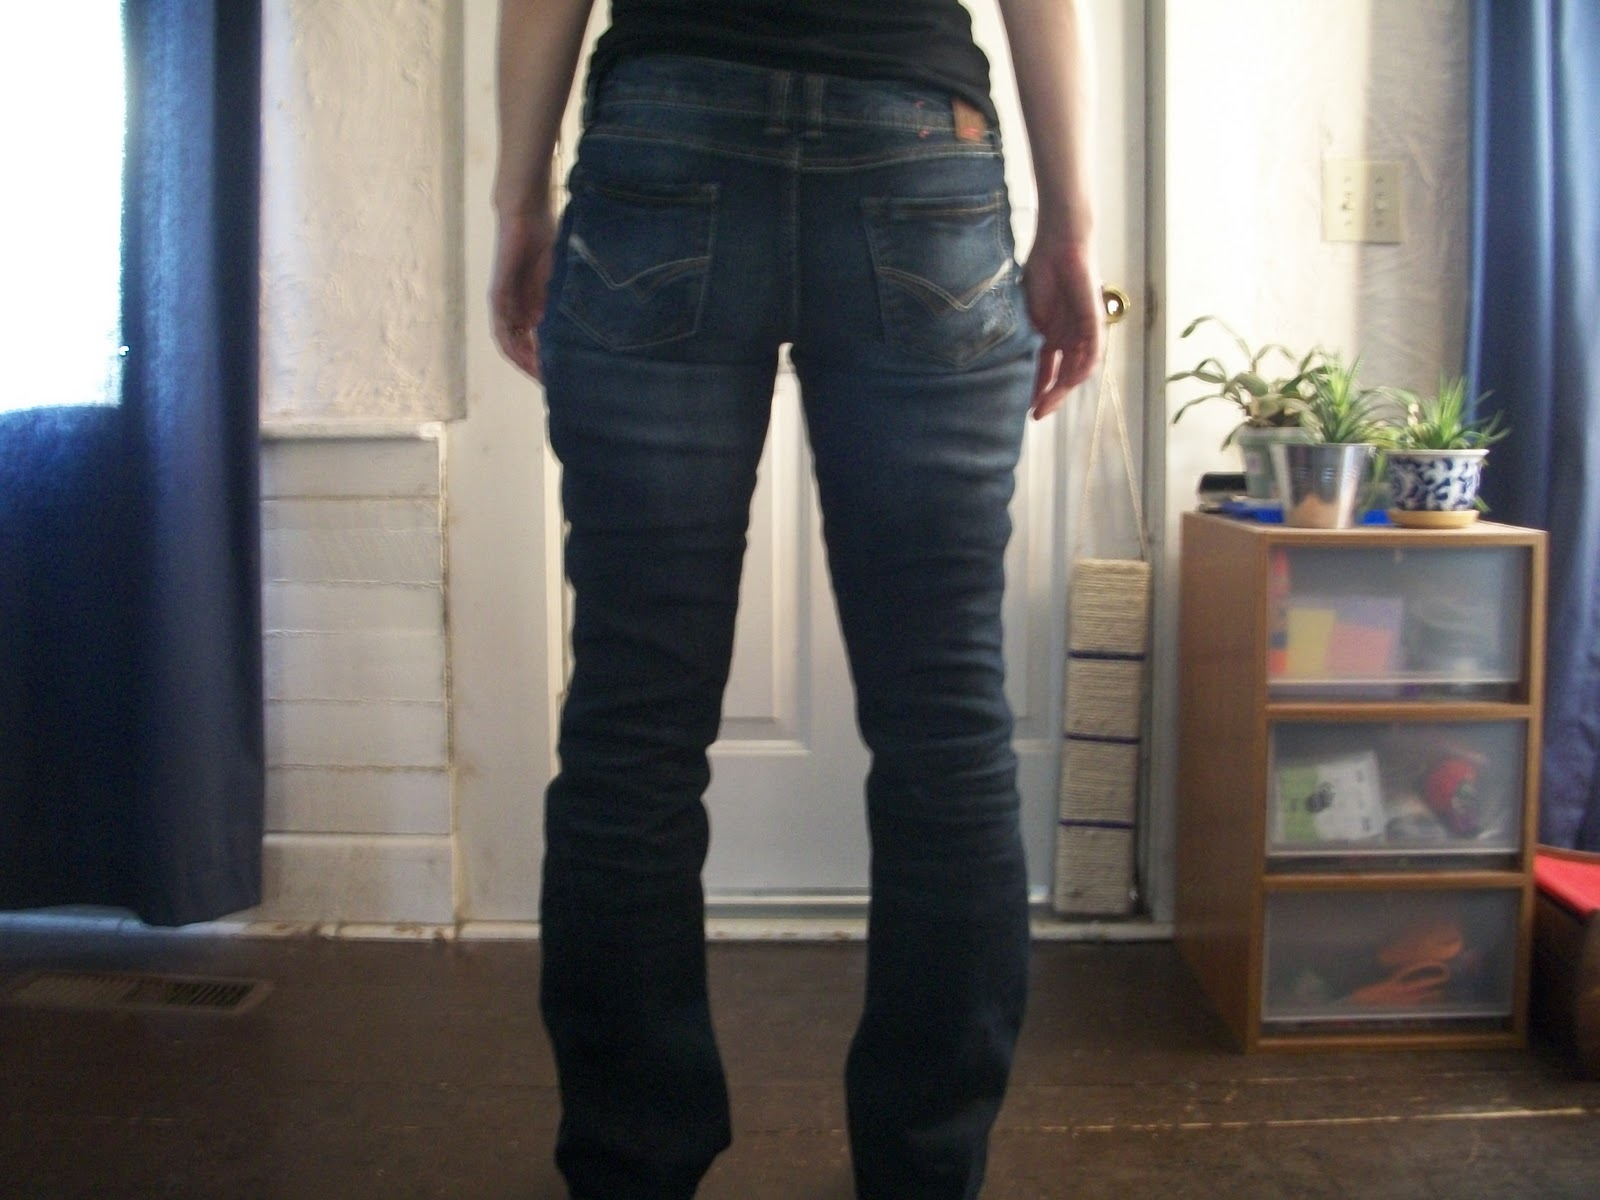 dfc358c2189 You can connect with Wallflower Jeans on Facebook and Twitter. Wallflower  Jeans can be purchased at a variety of retailers including Belks.